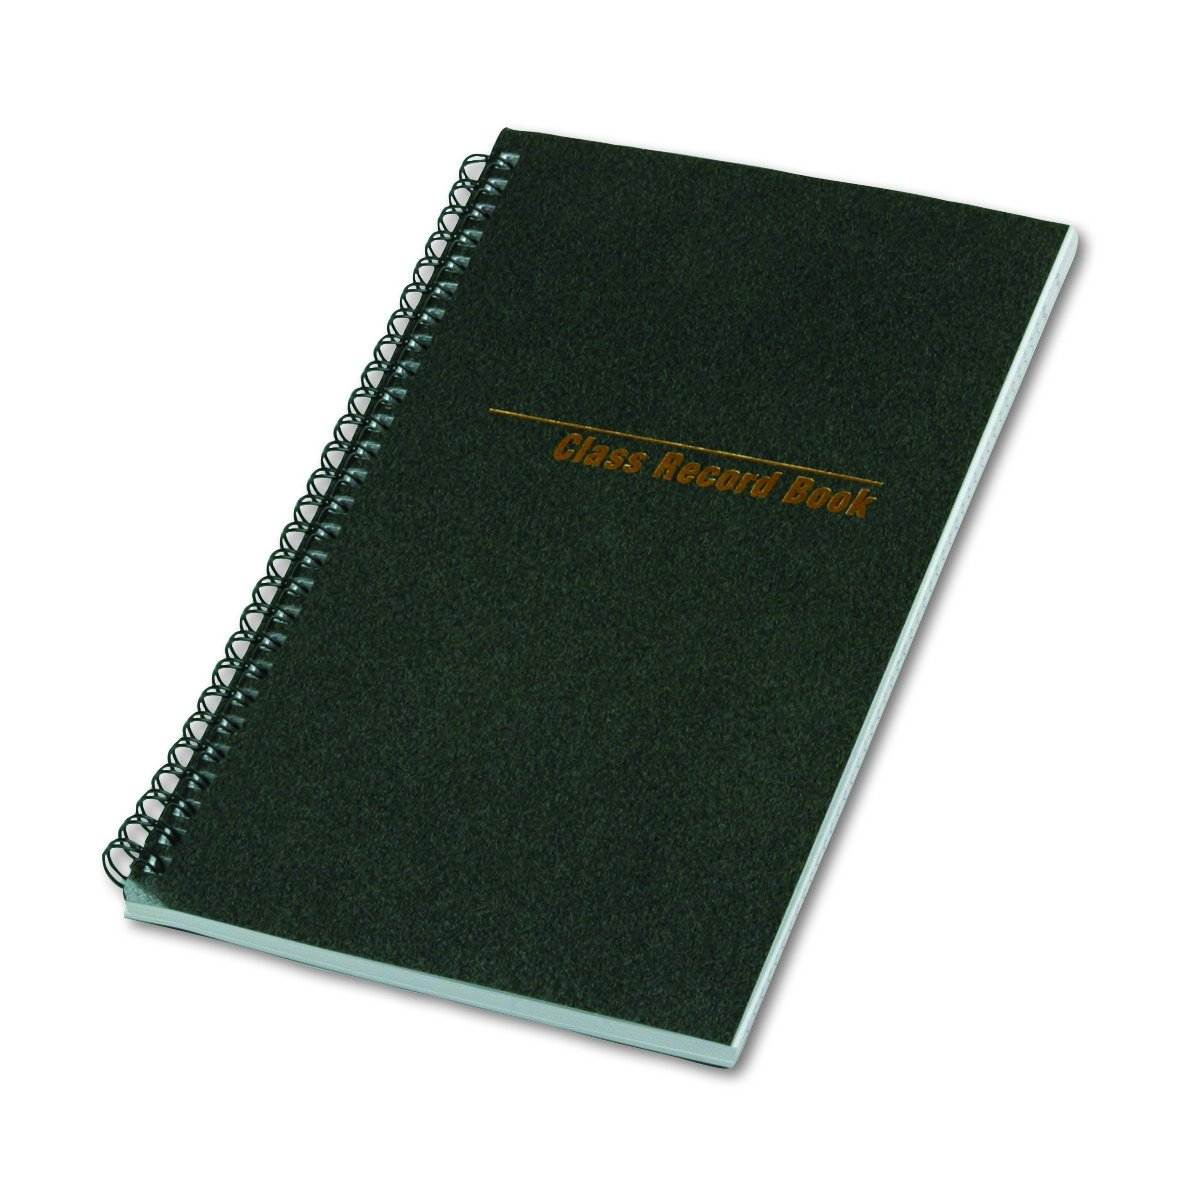 National 33990 Class Record Book, 6-Day/6-Week Format, 9-1/2 x 5-3/4, Black, 120 Pages